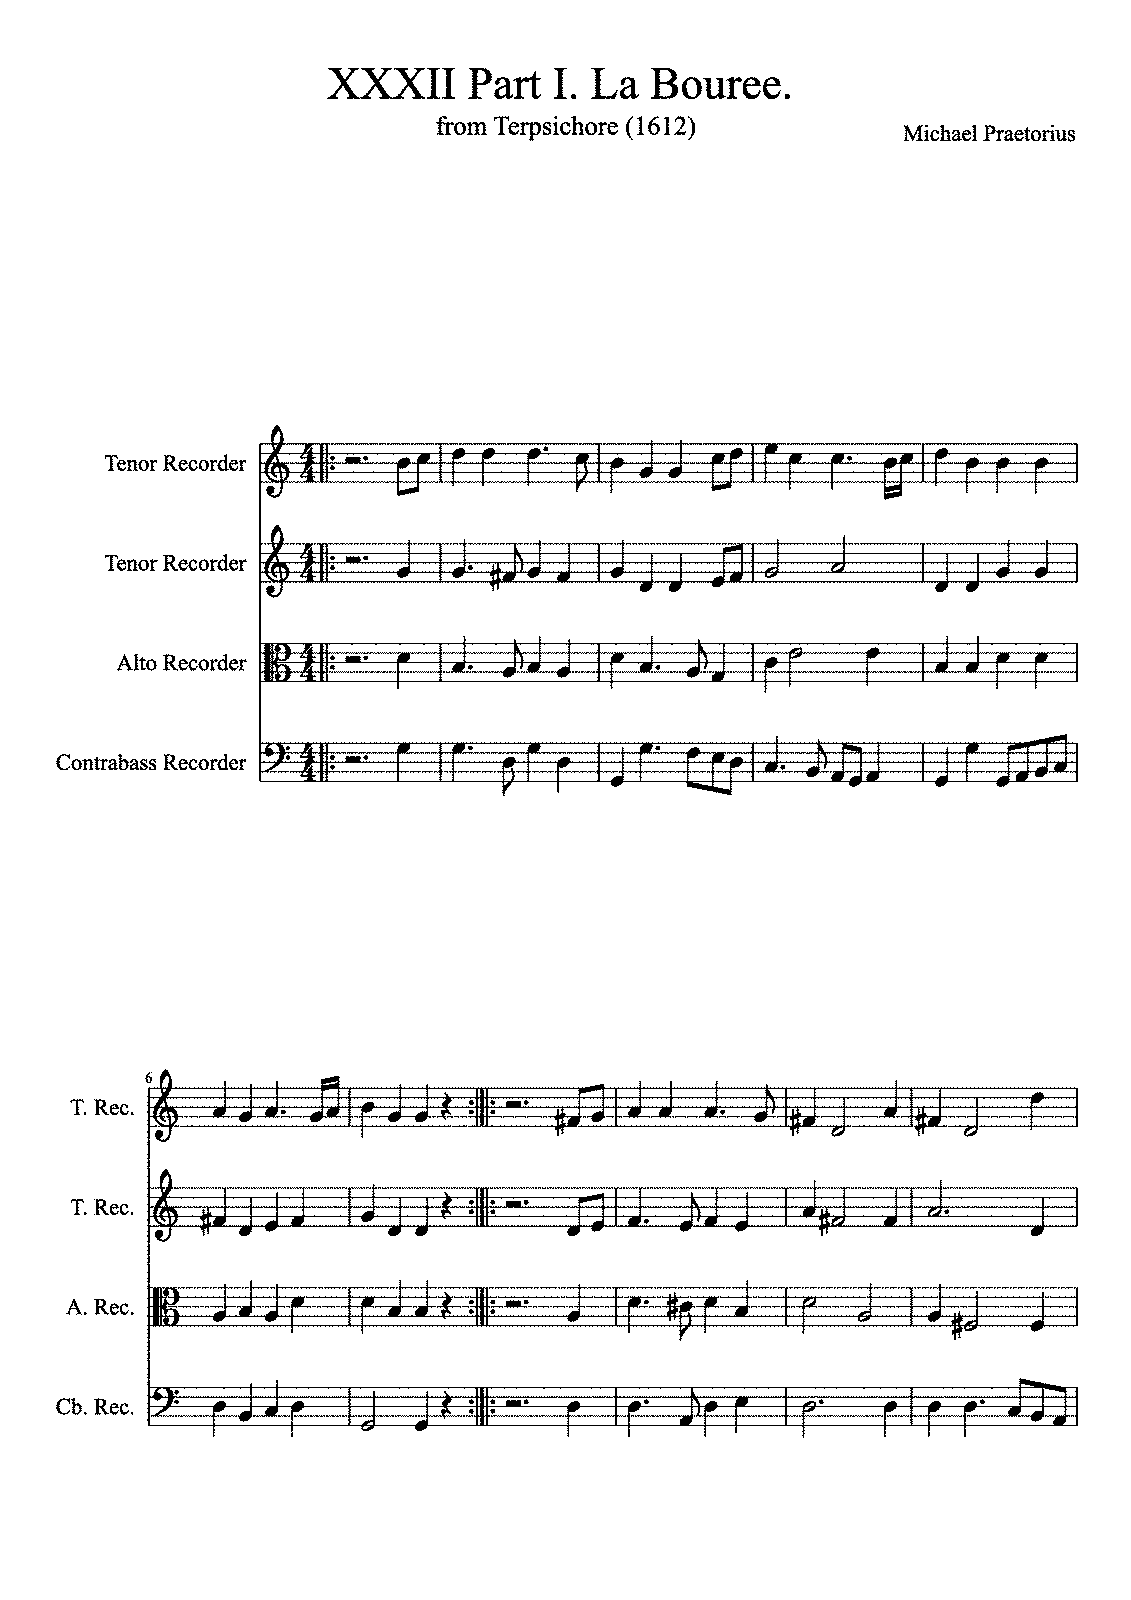 PMLP585050-XXXII Part I La Bouree from Terpsichore Michael Praetorius 1612.pdf